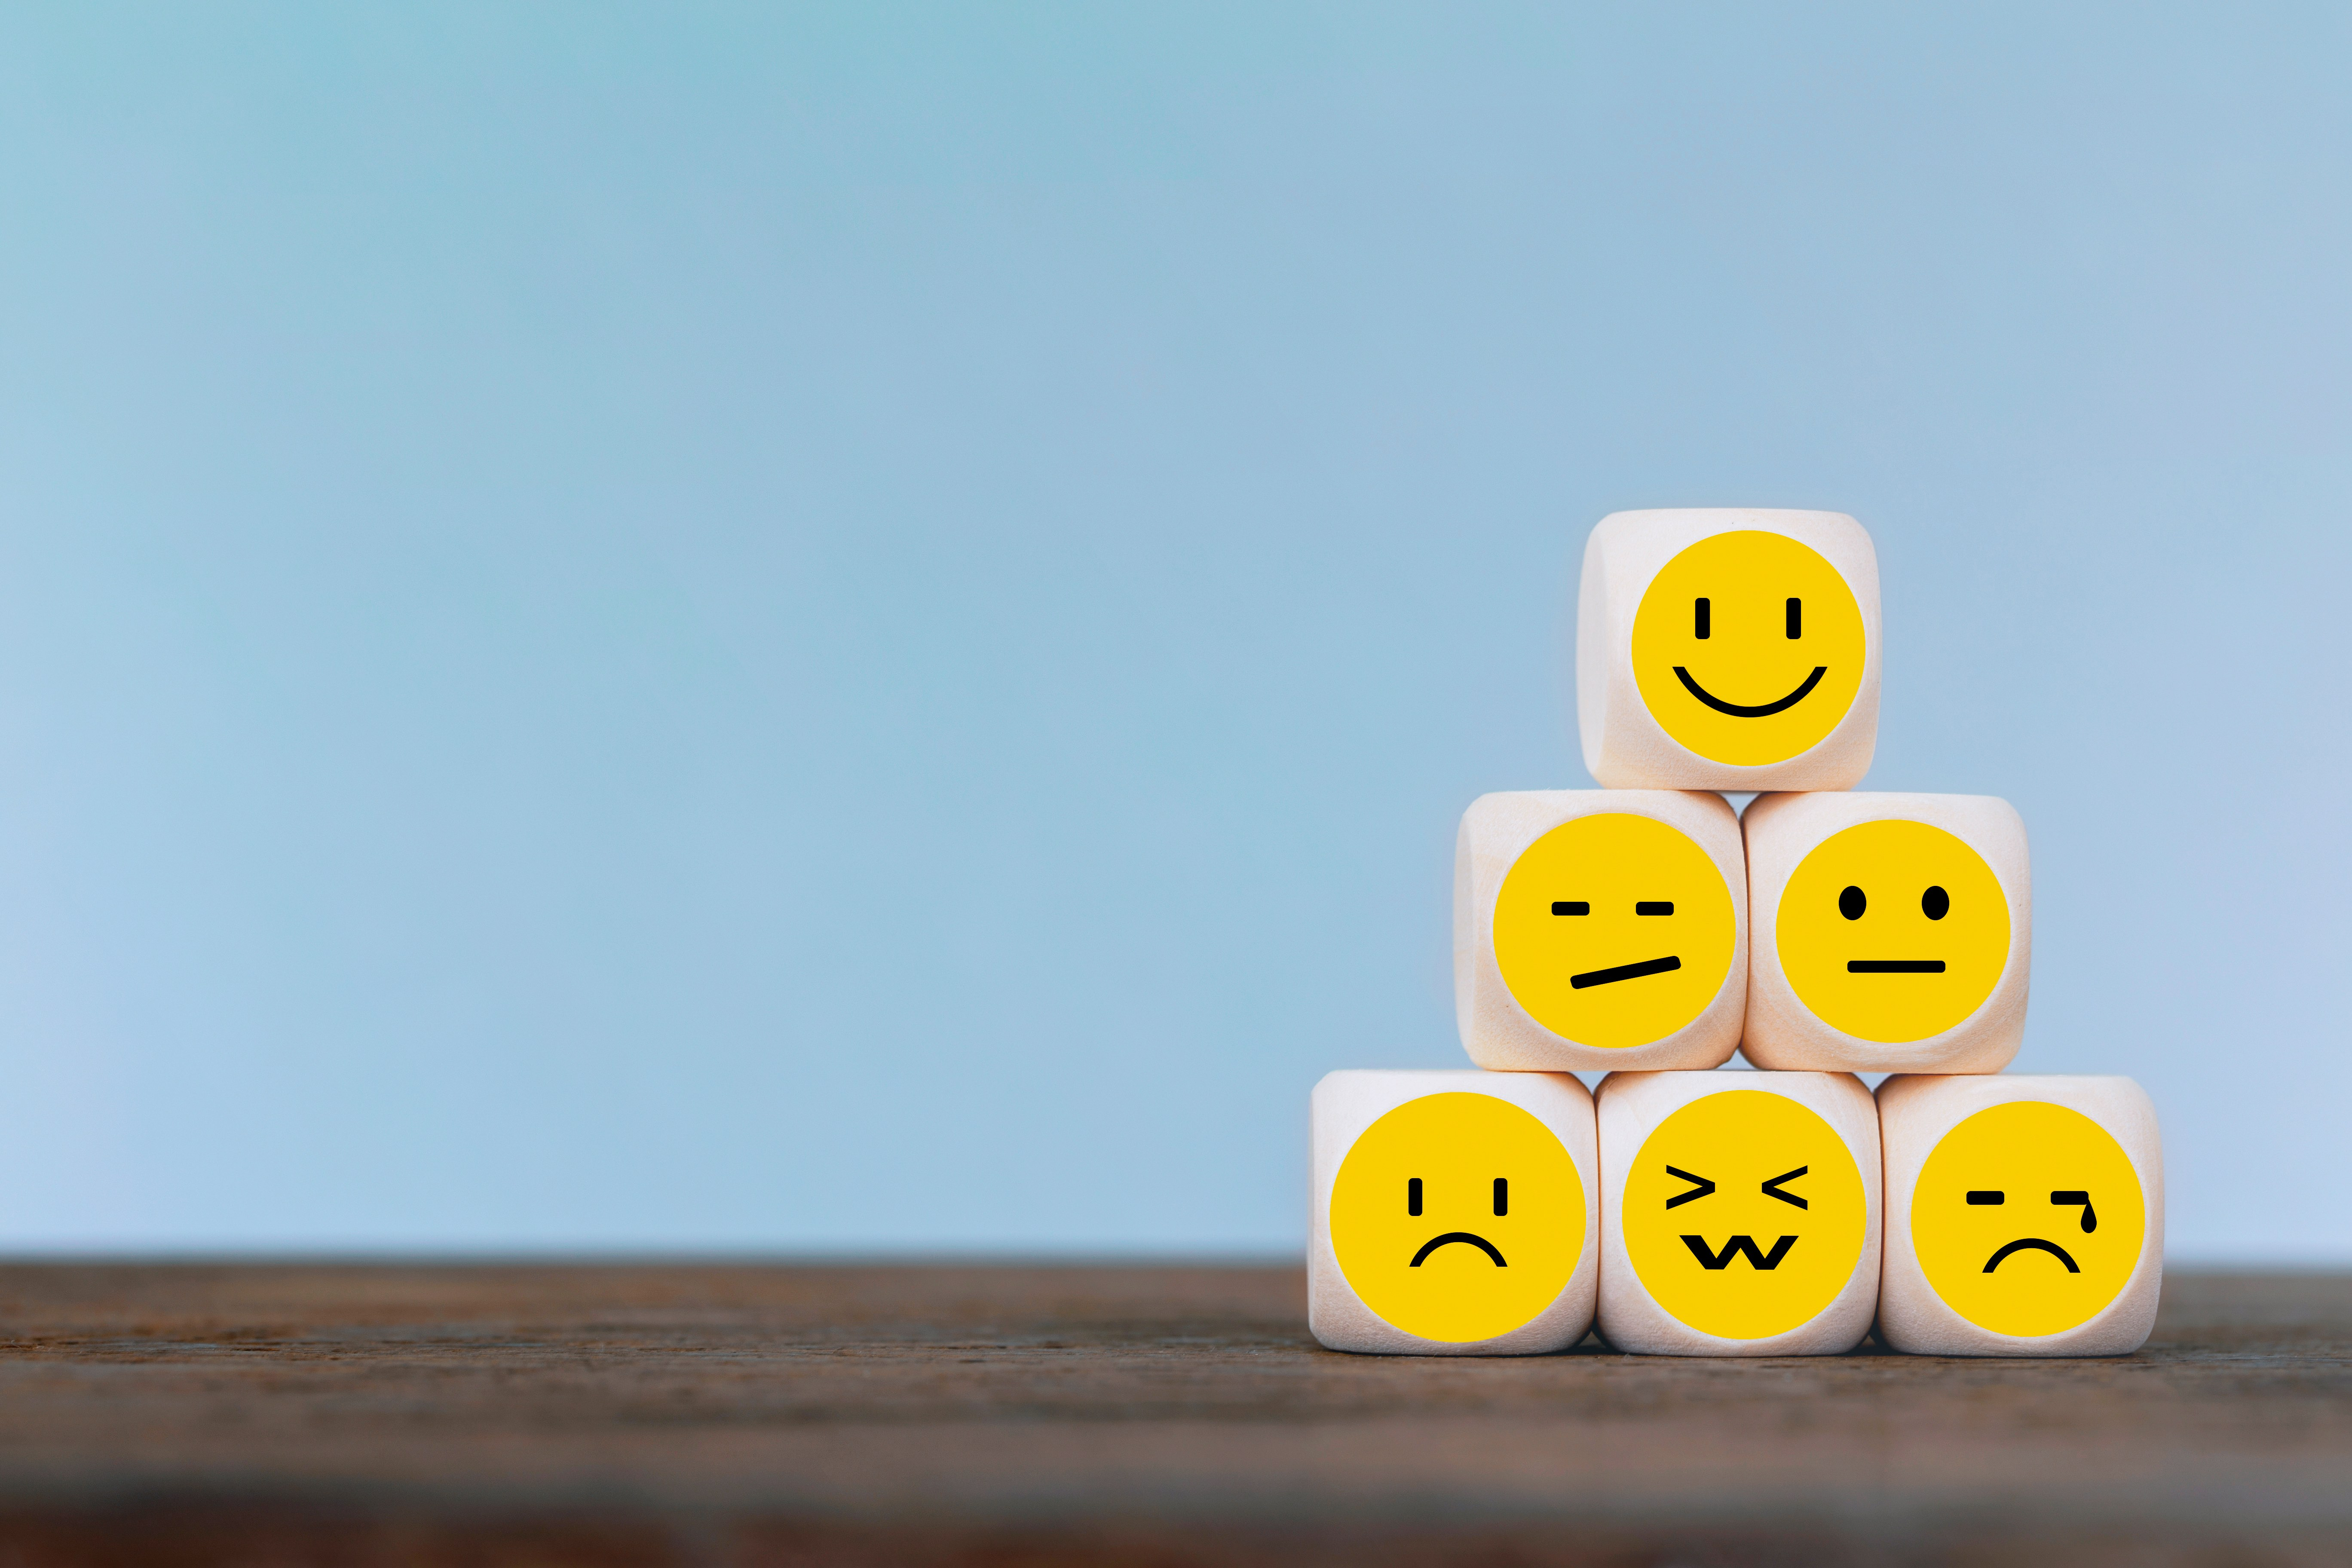 sometimes we let our feelings and emotions drive our thoughts, not realizing we can choose our thoughts and change our feelings.(Mizkit/Shutterstock)